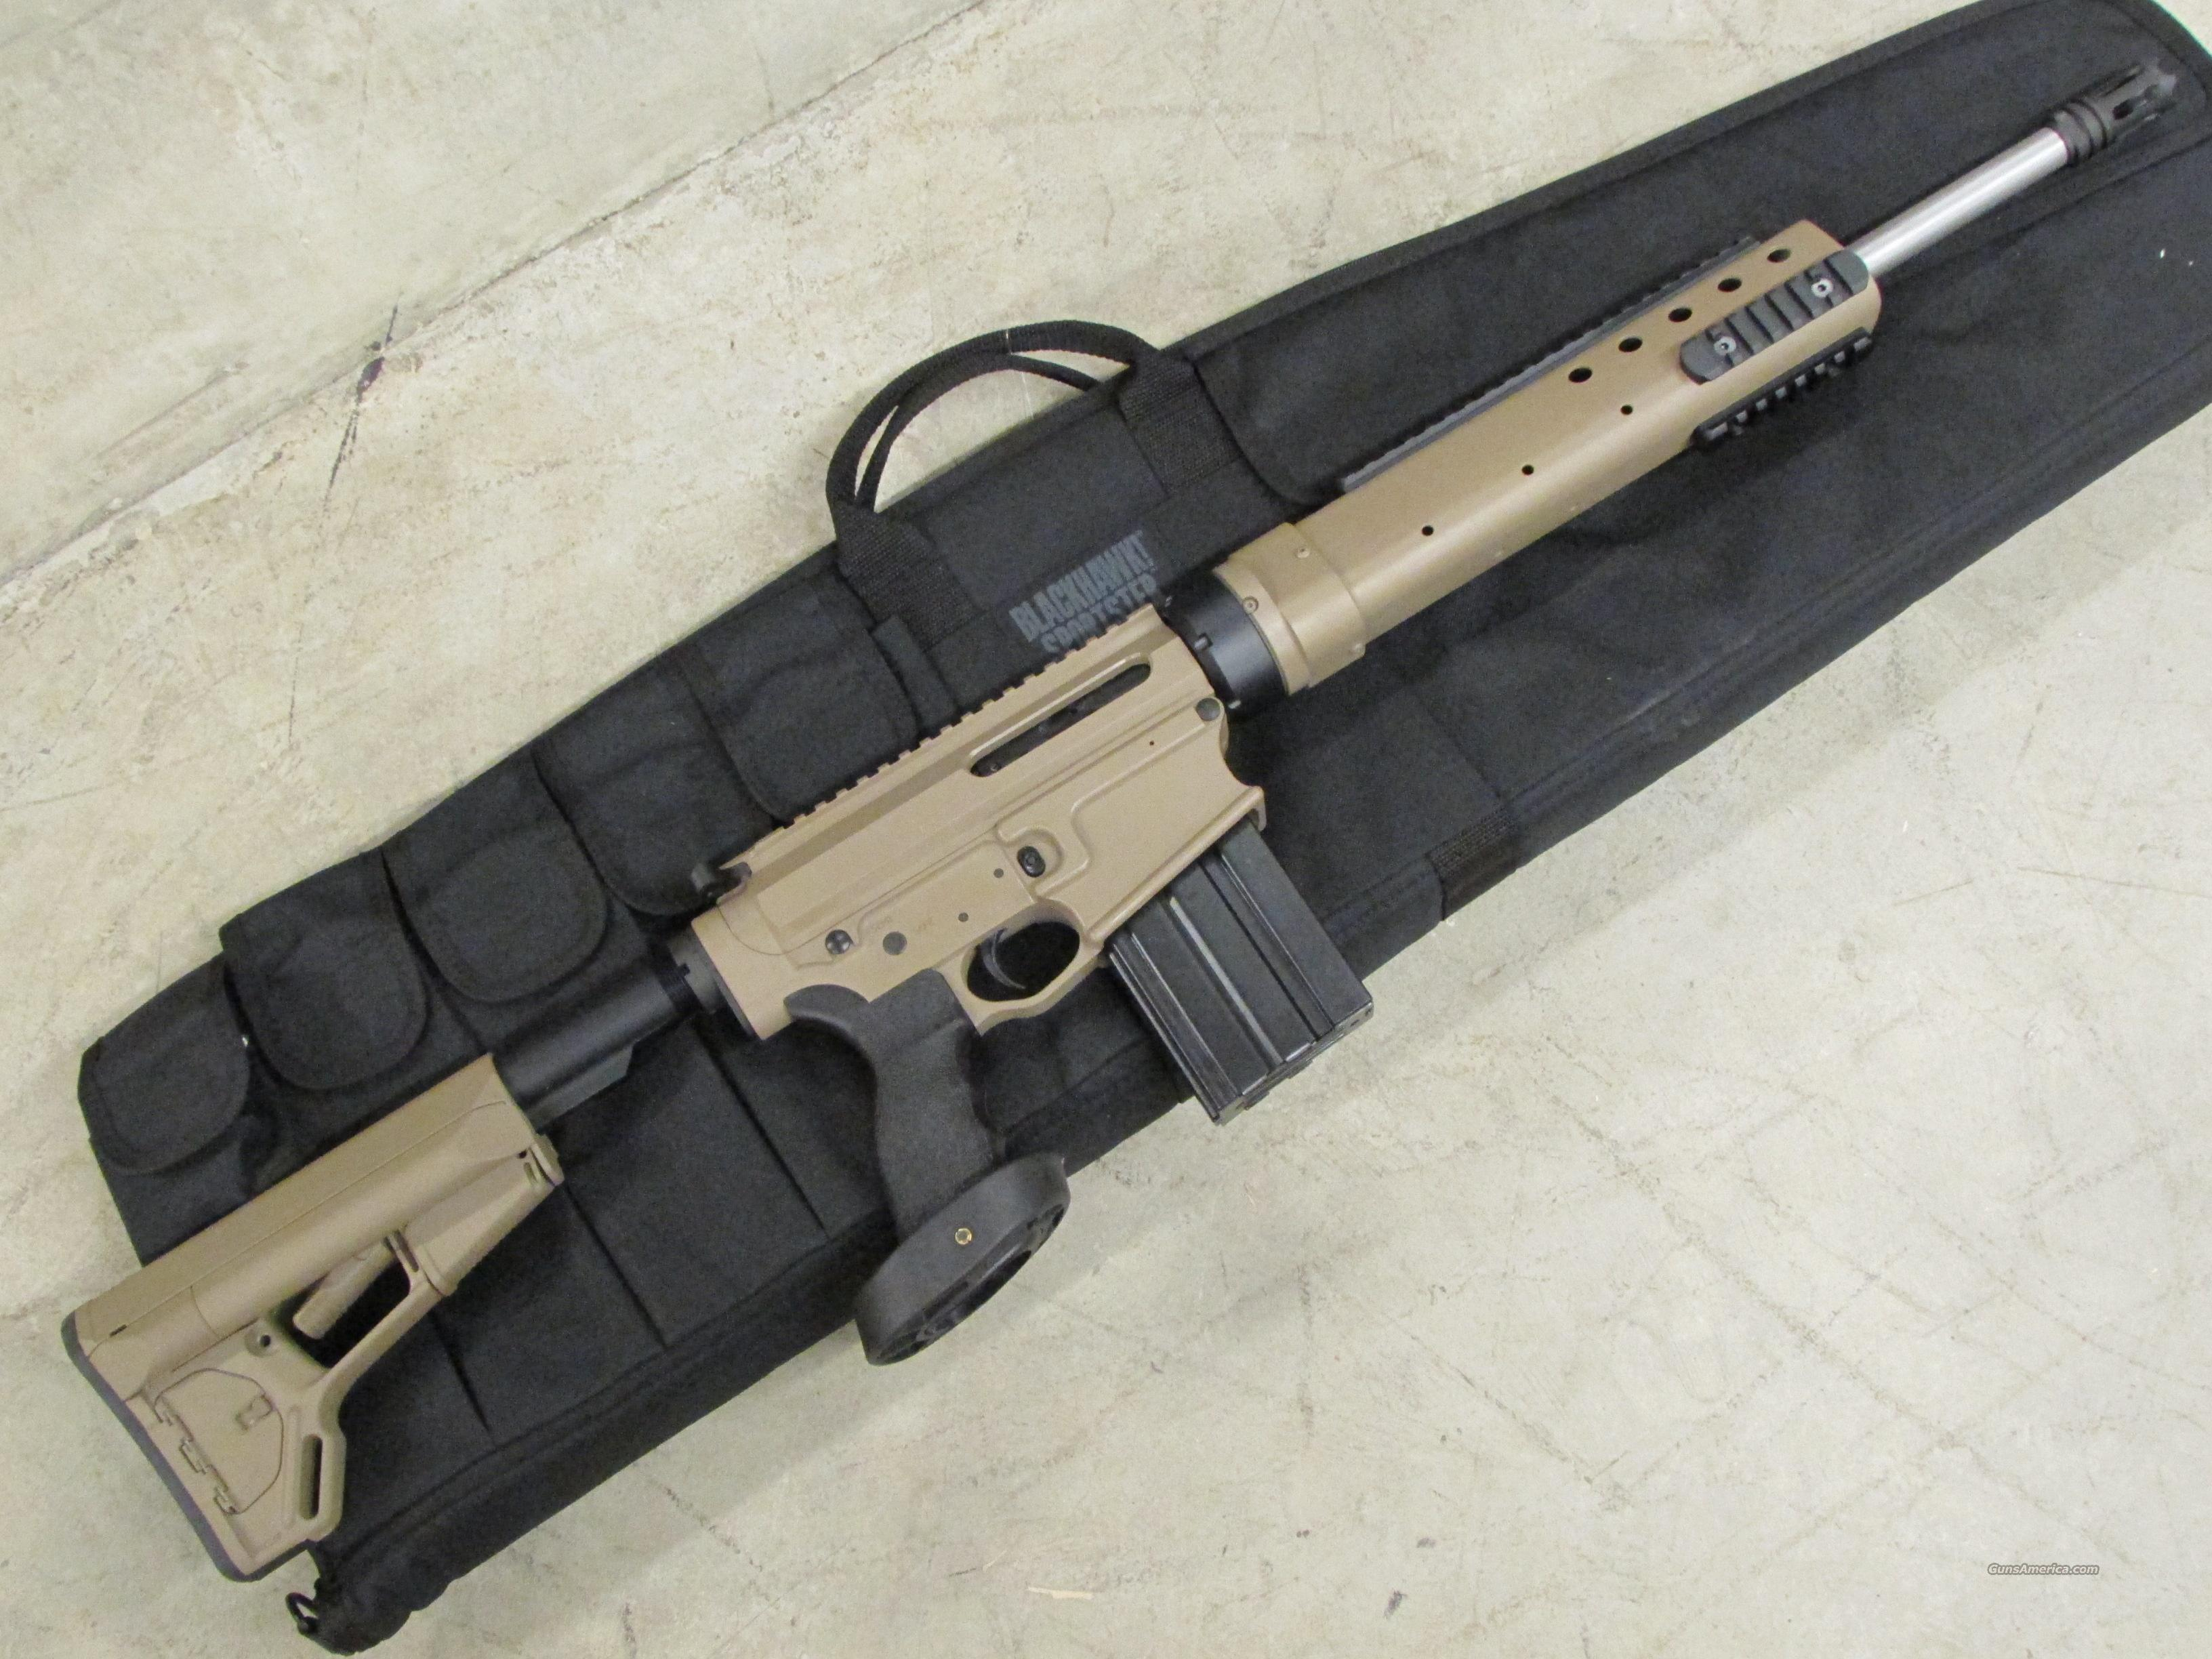 Intacto Arms Athena 3 Carbon Tac AR-10 .308 Win Cerakote FDE  Guns > Rifles > AR-15 Rifles - Small Manufacturers > Complete Rifle